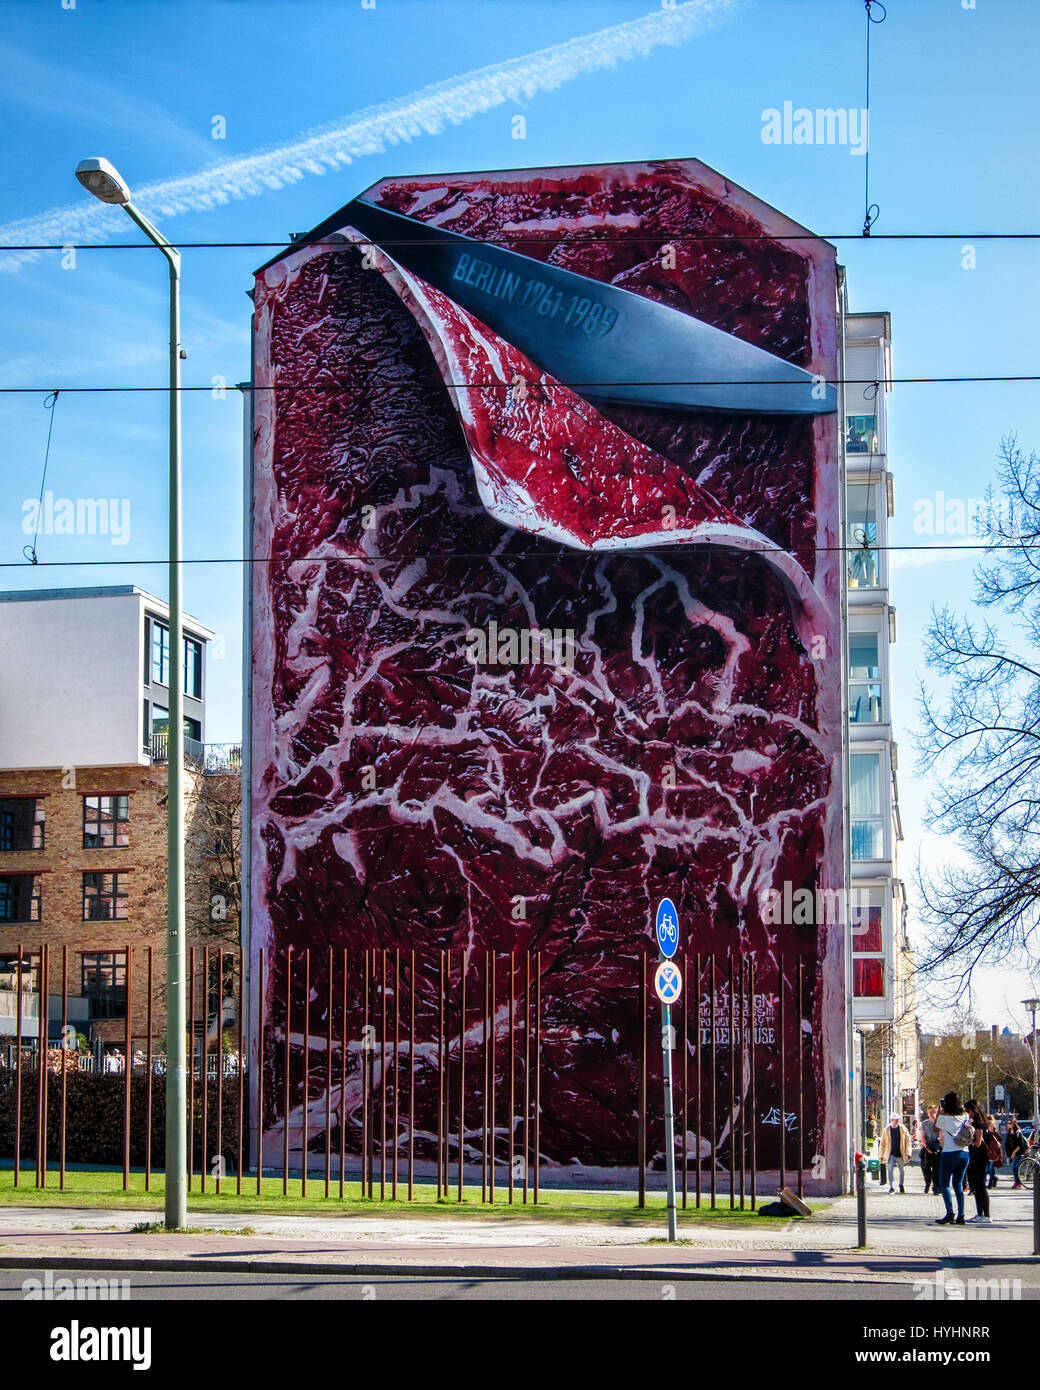 Berlin,Mitte.The steak mural by Marcus Haas.Giant artwork of knife slicing meat represents division of East & - Stock Image